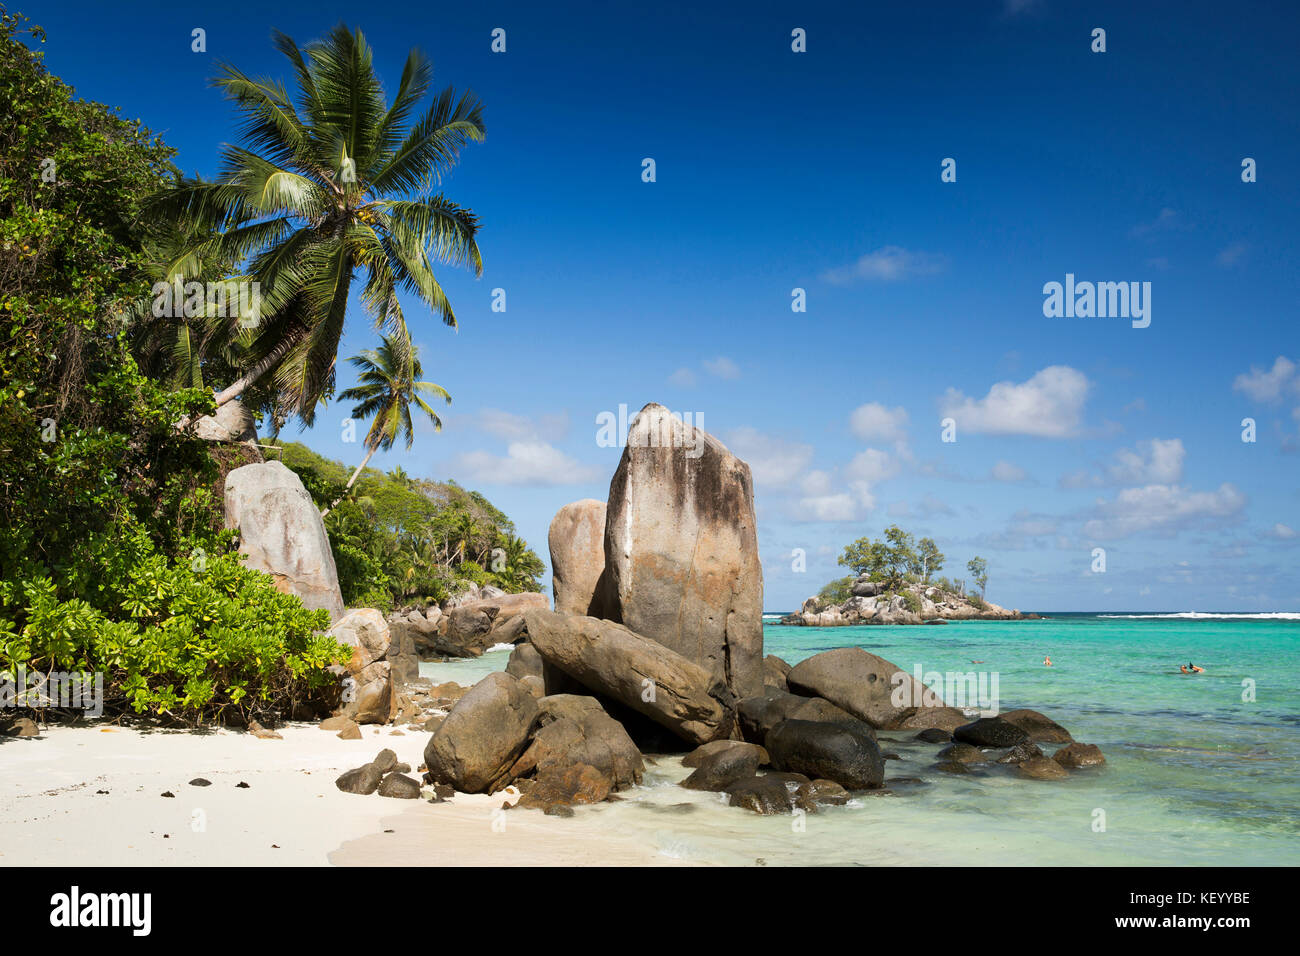 The Seychelles, Mahe, Anse Royale, Ile Souris, beach, granite rock formation sculpted by the sea - Stock Image